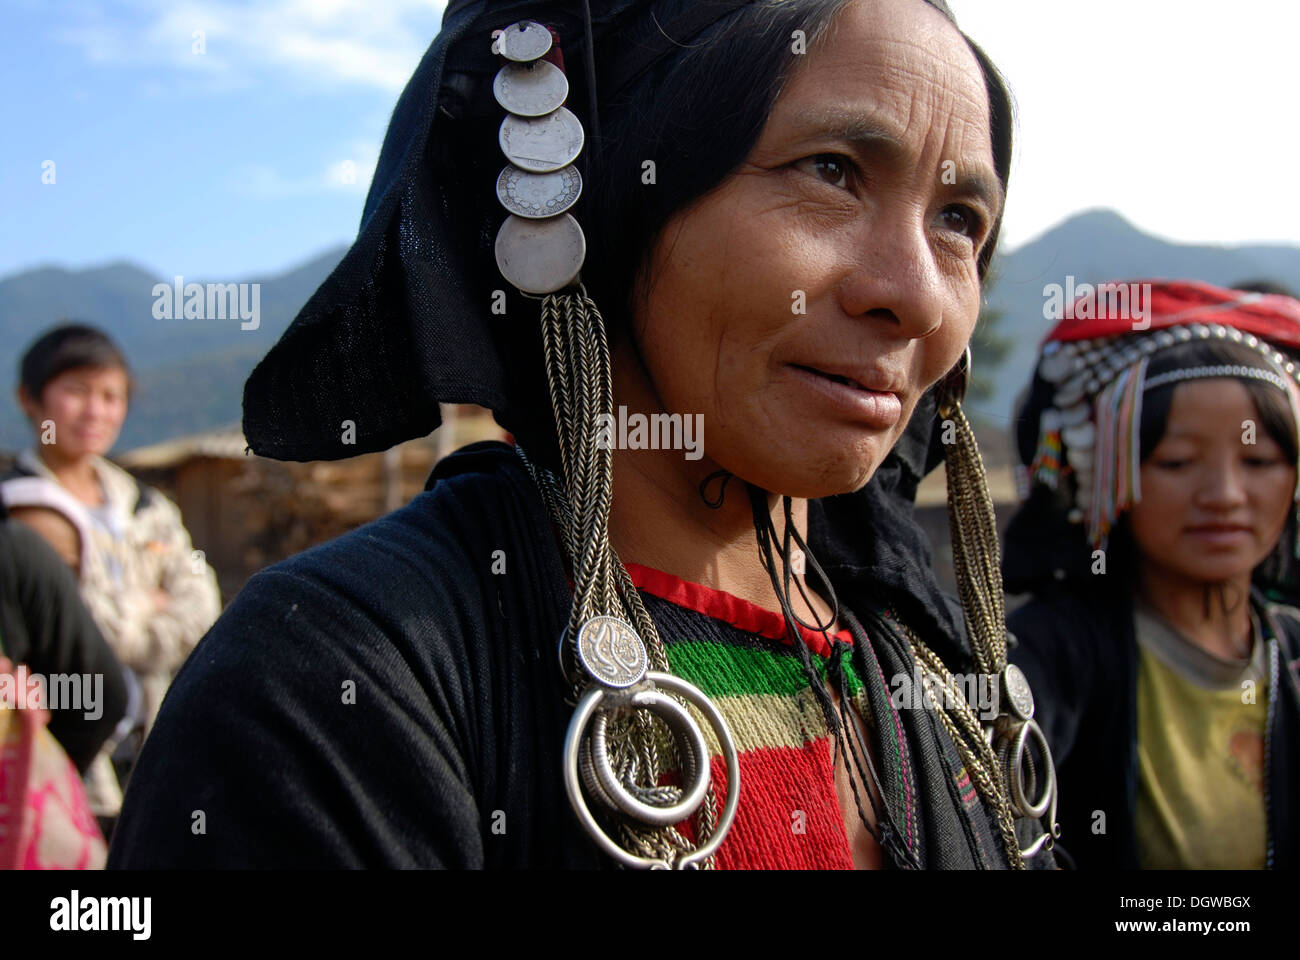 Portrait, smiling woman of the Phixor Akha ethnic group, traditional clothing dyed with indigo, headdress with silver Stock Photo